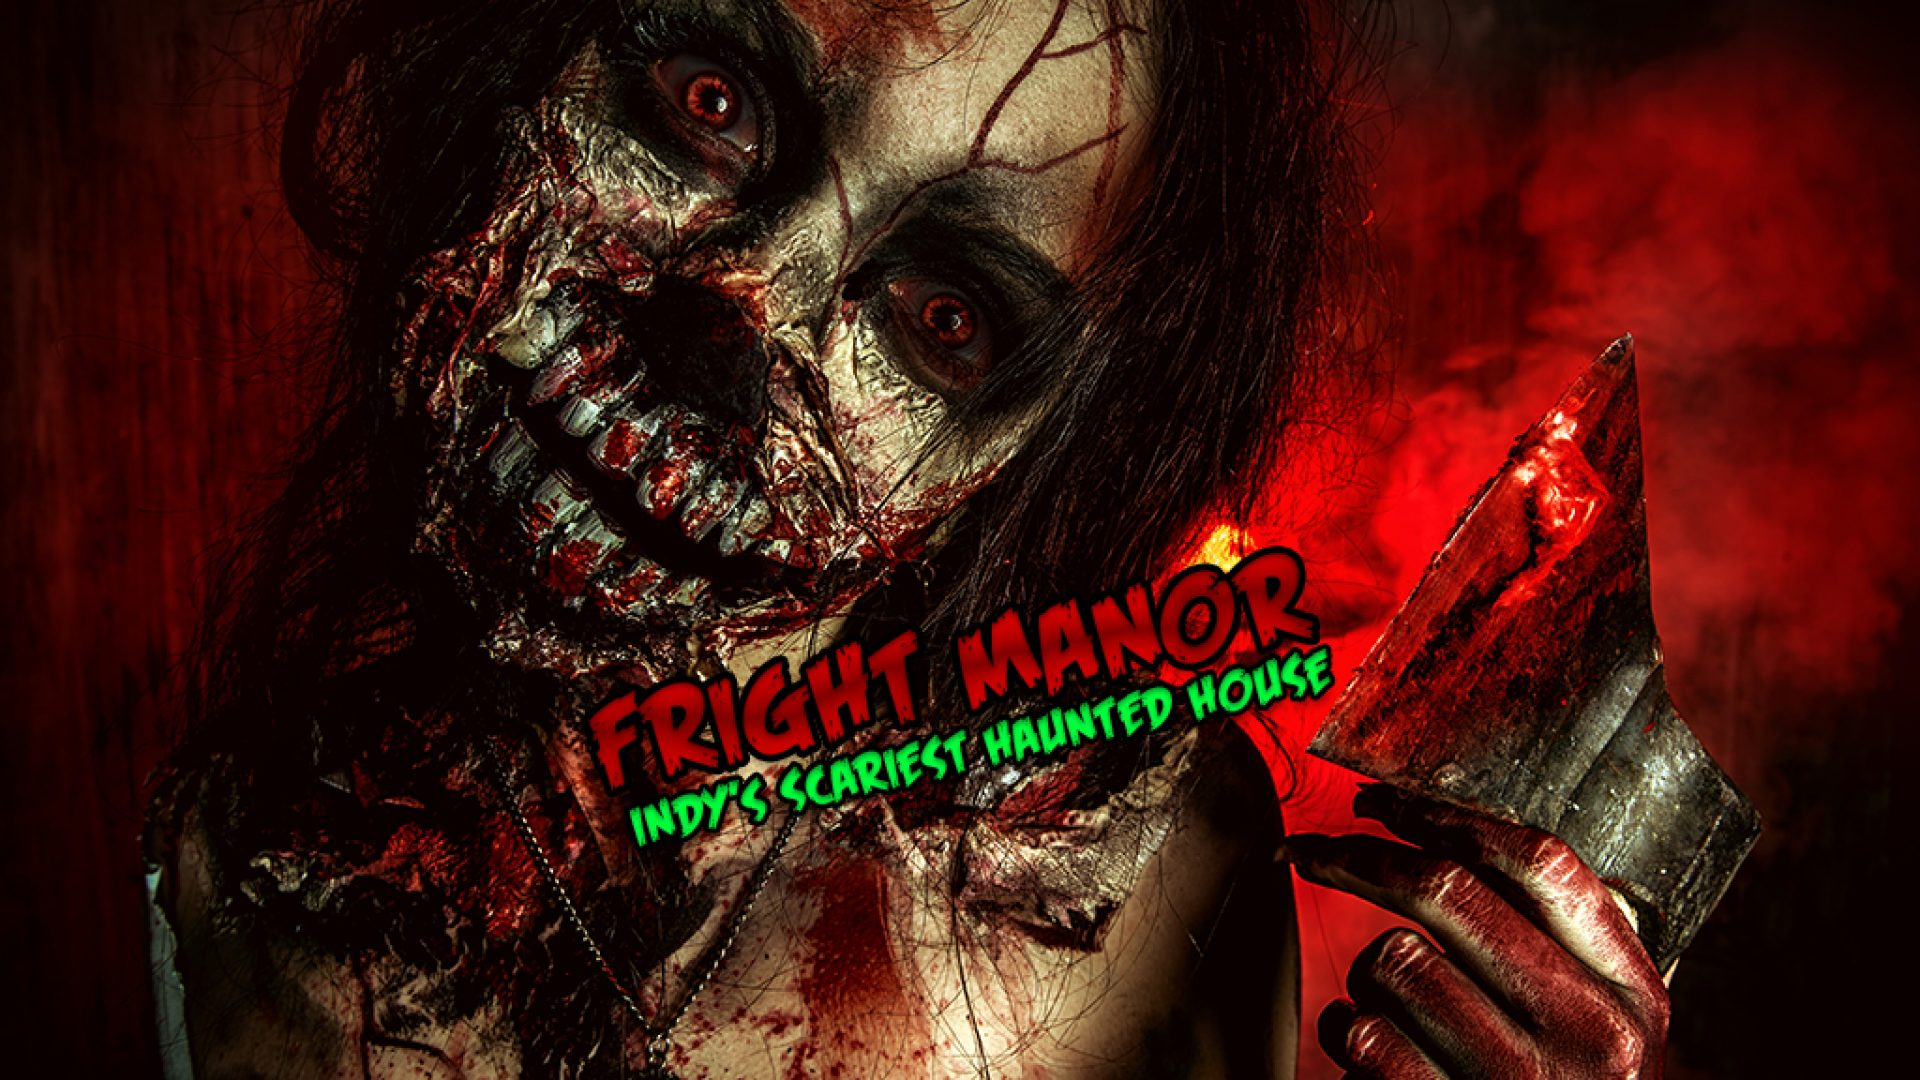 fright-manor-main